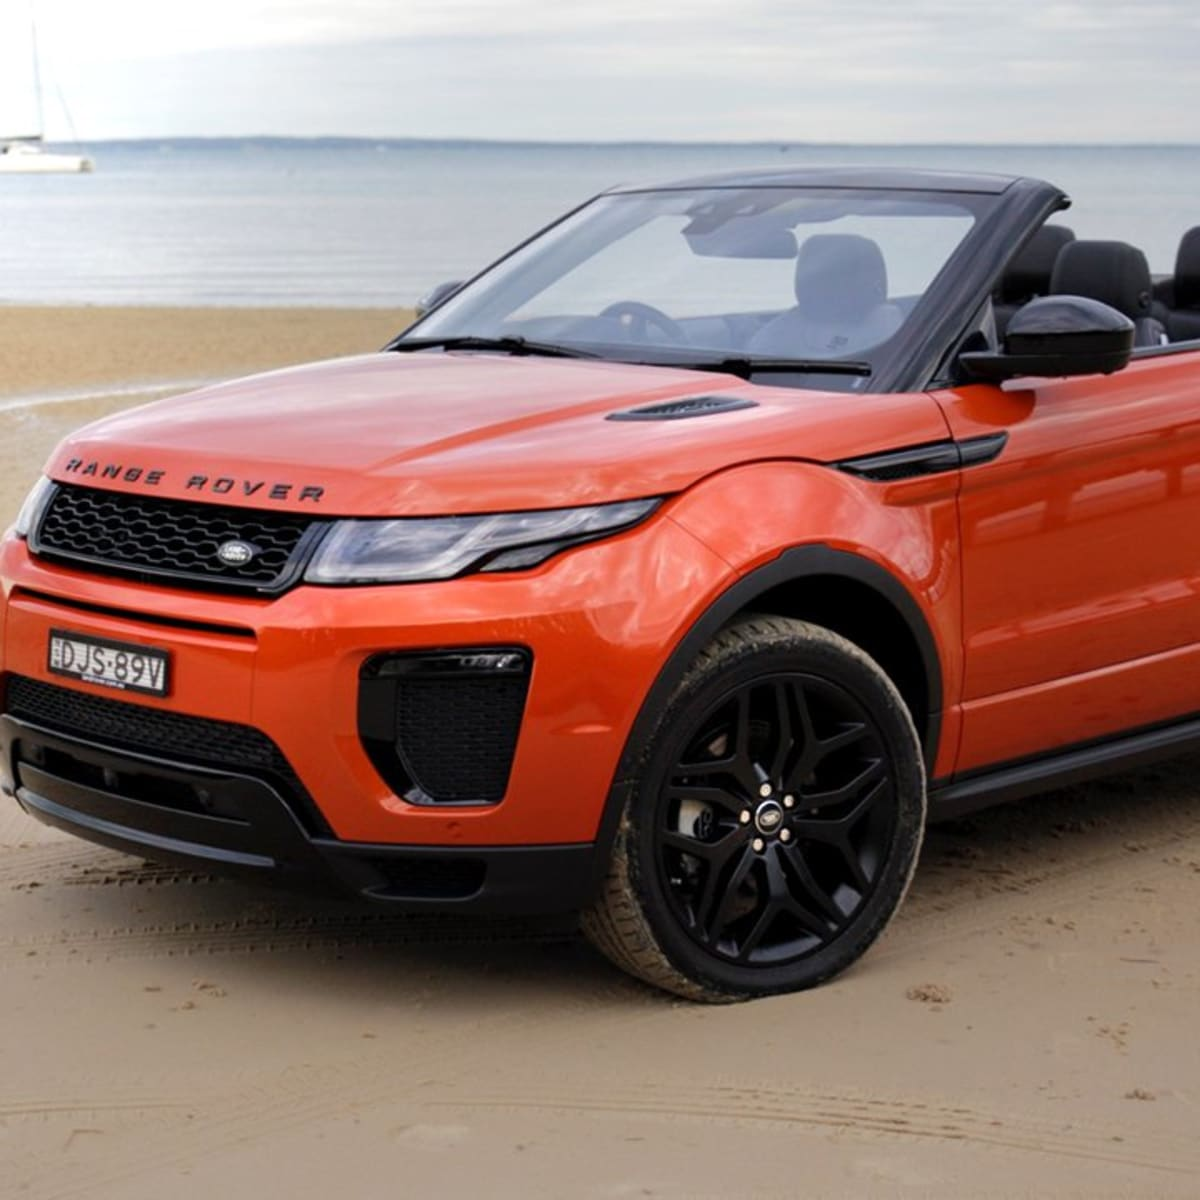 2017 Range Rover Evoque Convertible review | CarAdvice